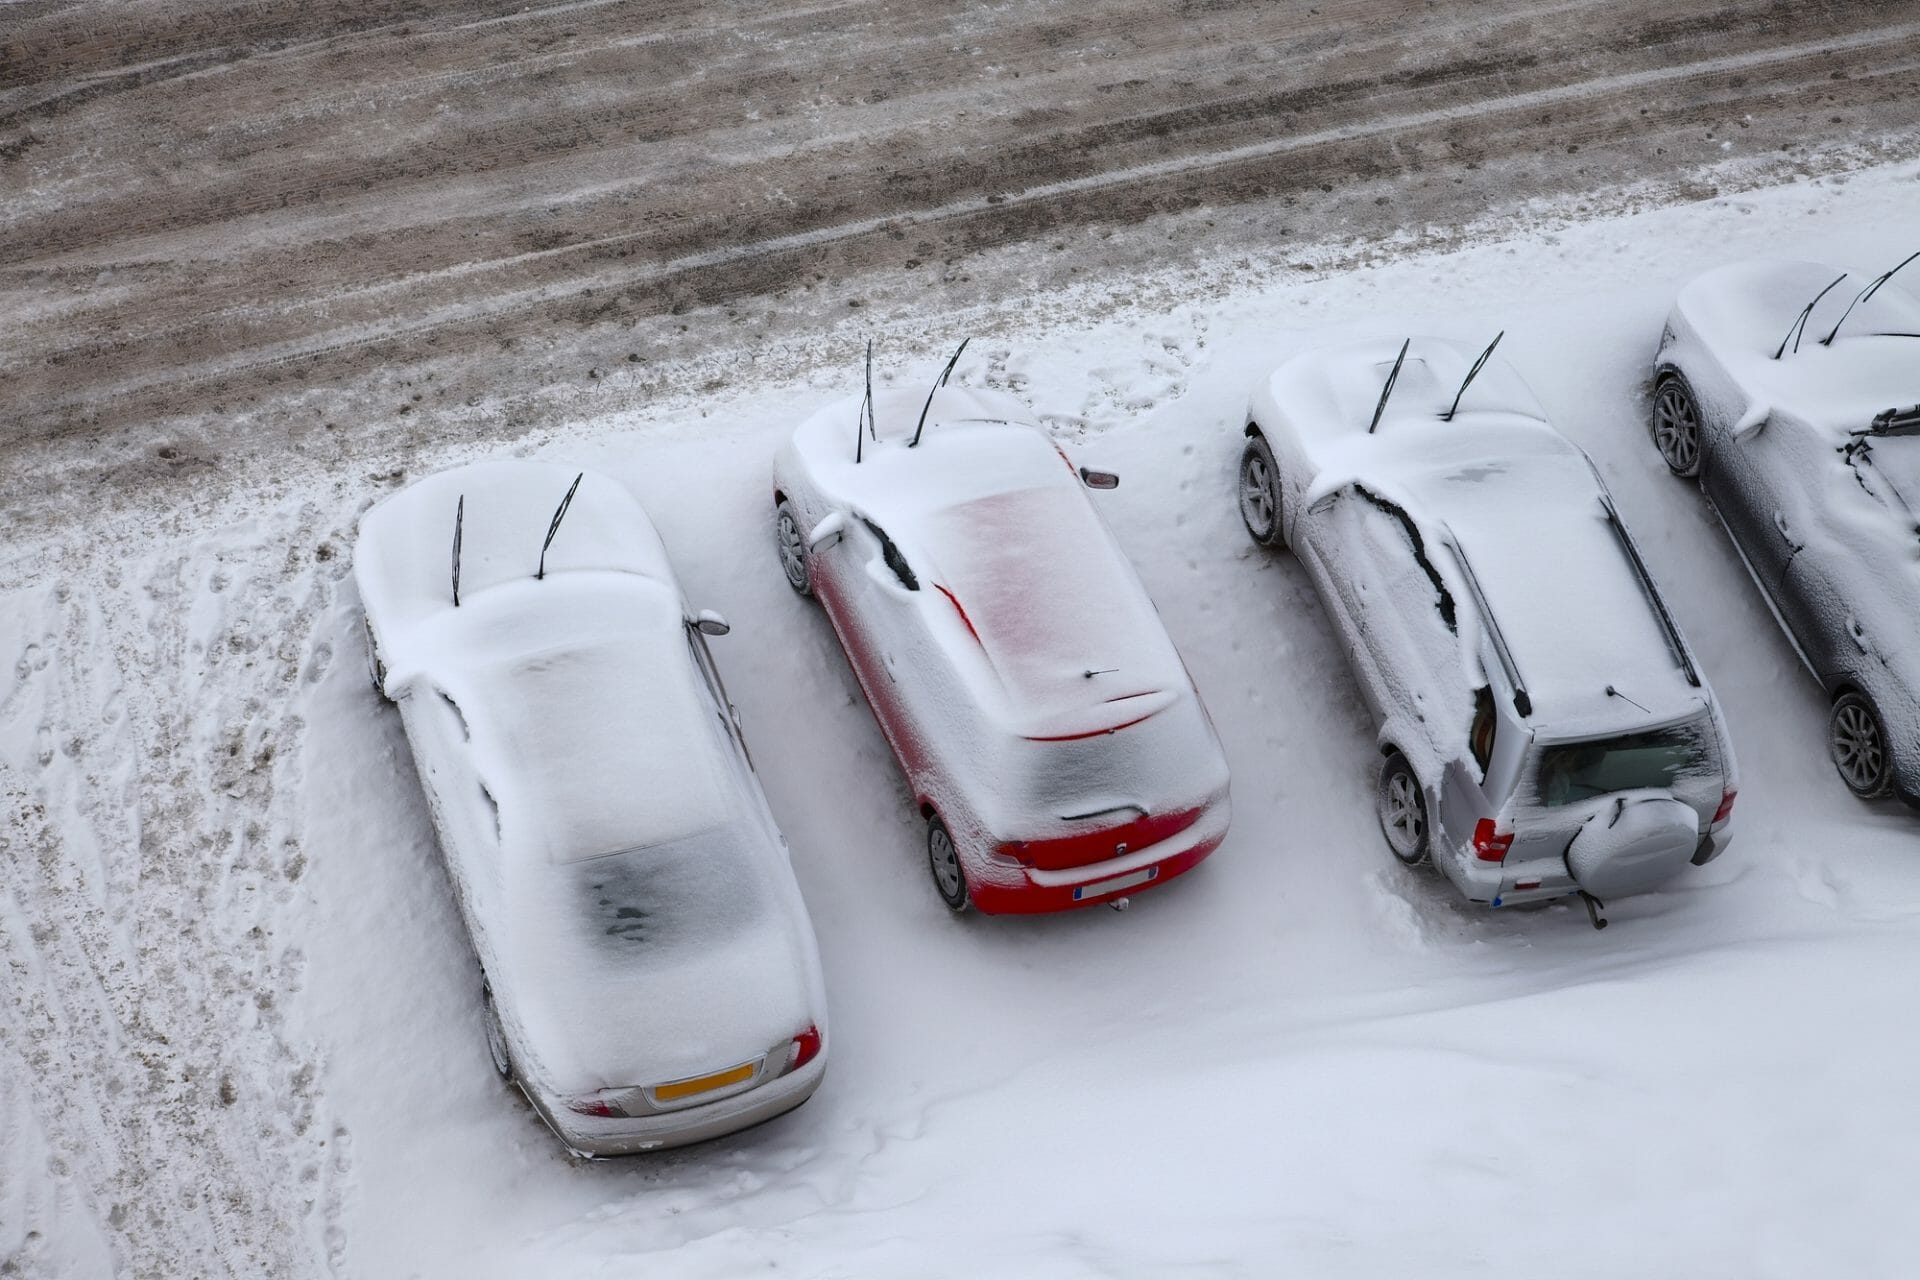 Parking Lot and cars covered in snow and ice